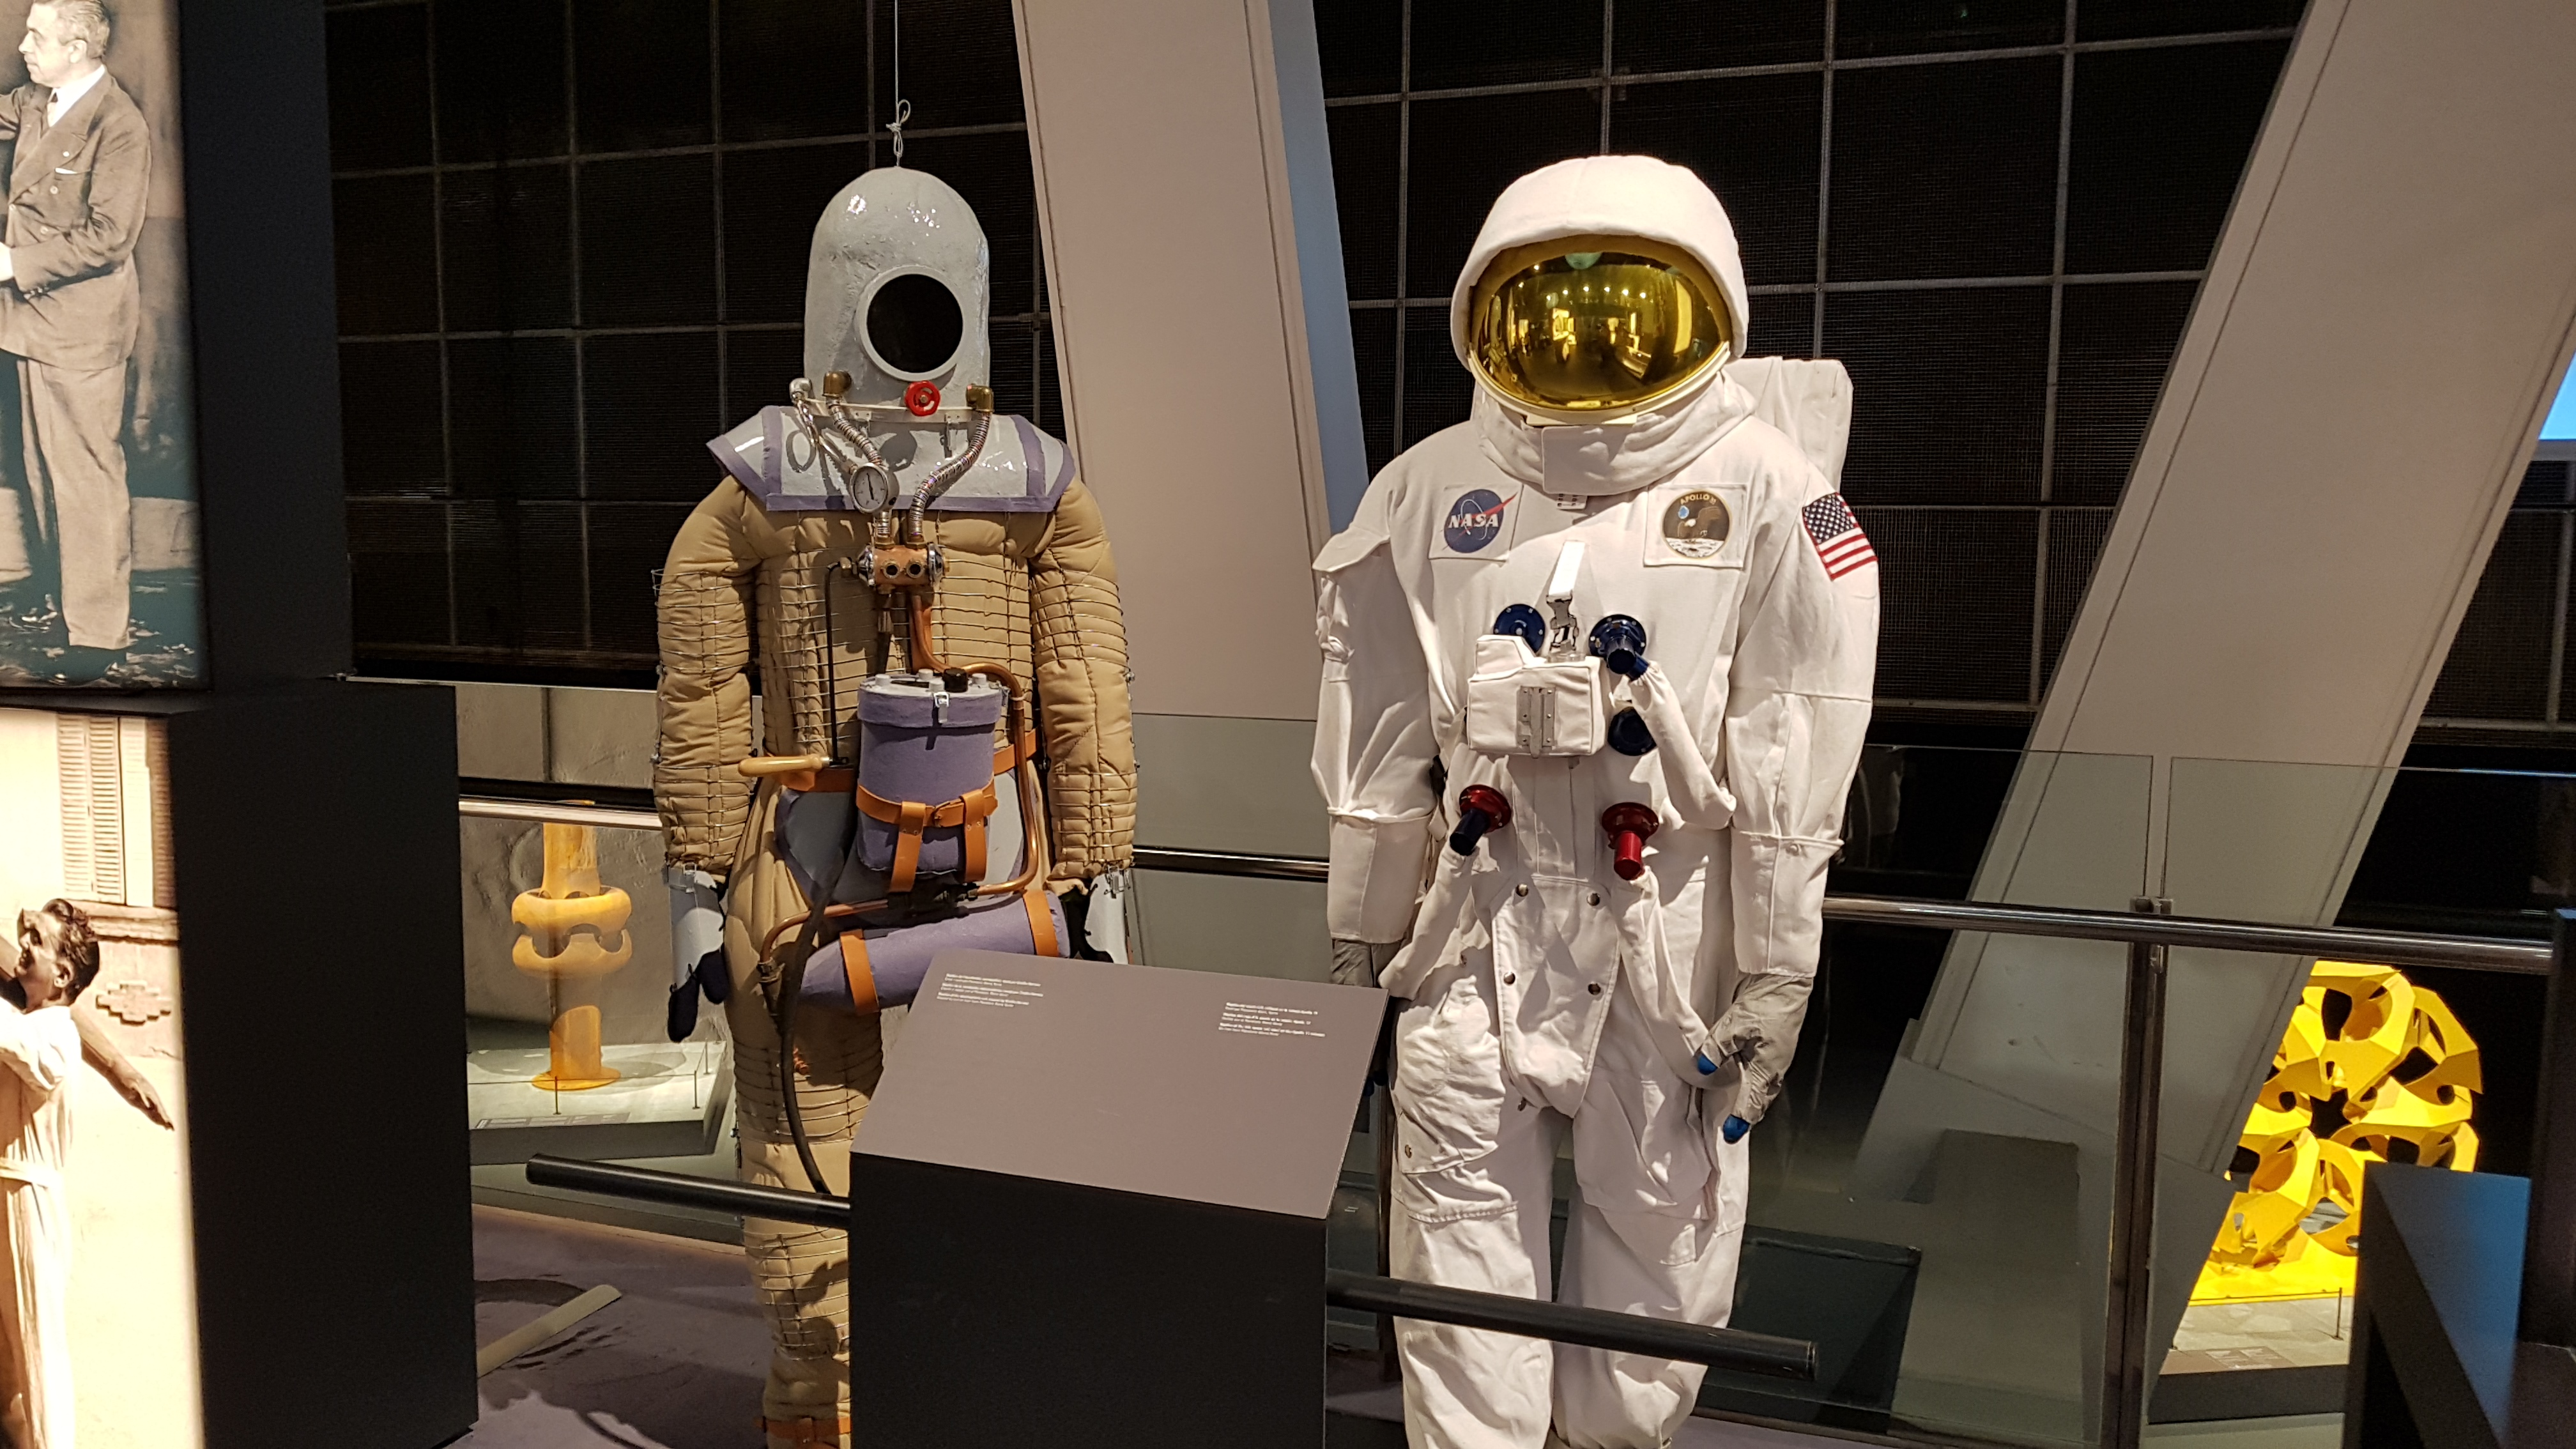 <picture showing side by side replicas of the space suit made by Emilio Herrera and the space suit used on Apollo 11.